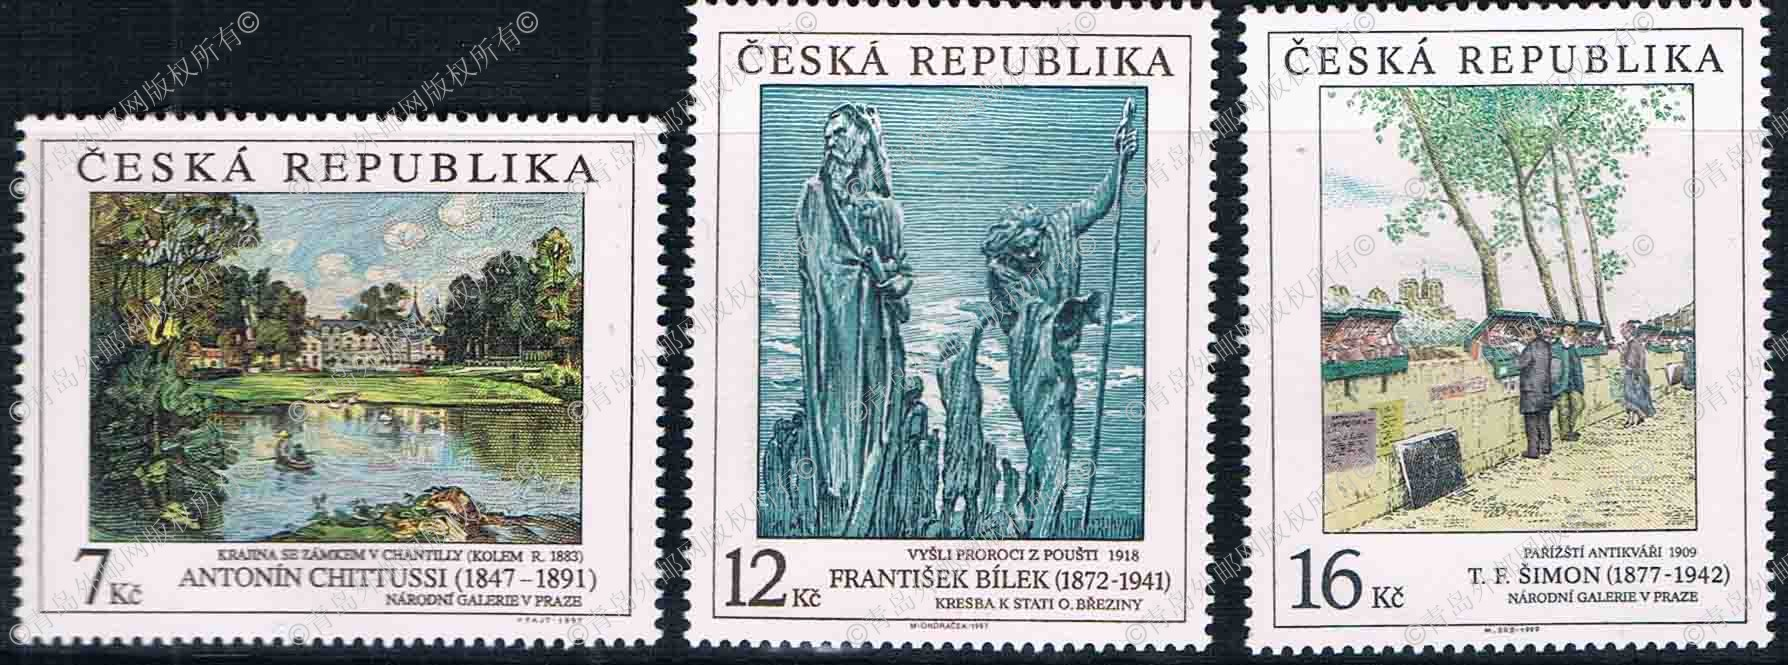 CR0022 Czech 1997 painting series engraving stamp 3 new 0528 Edition cr0017 czech 1996 world heritage roleta and shengnai bohm church 2 new 0528 grams